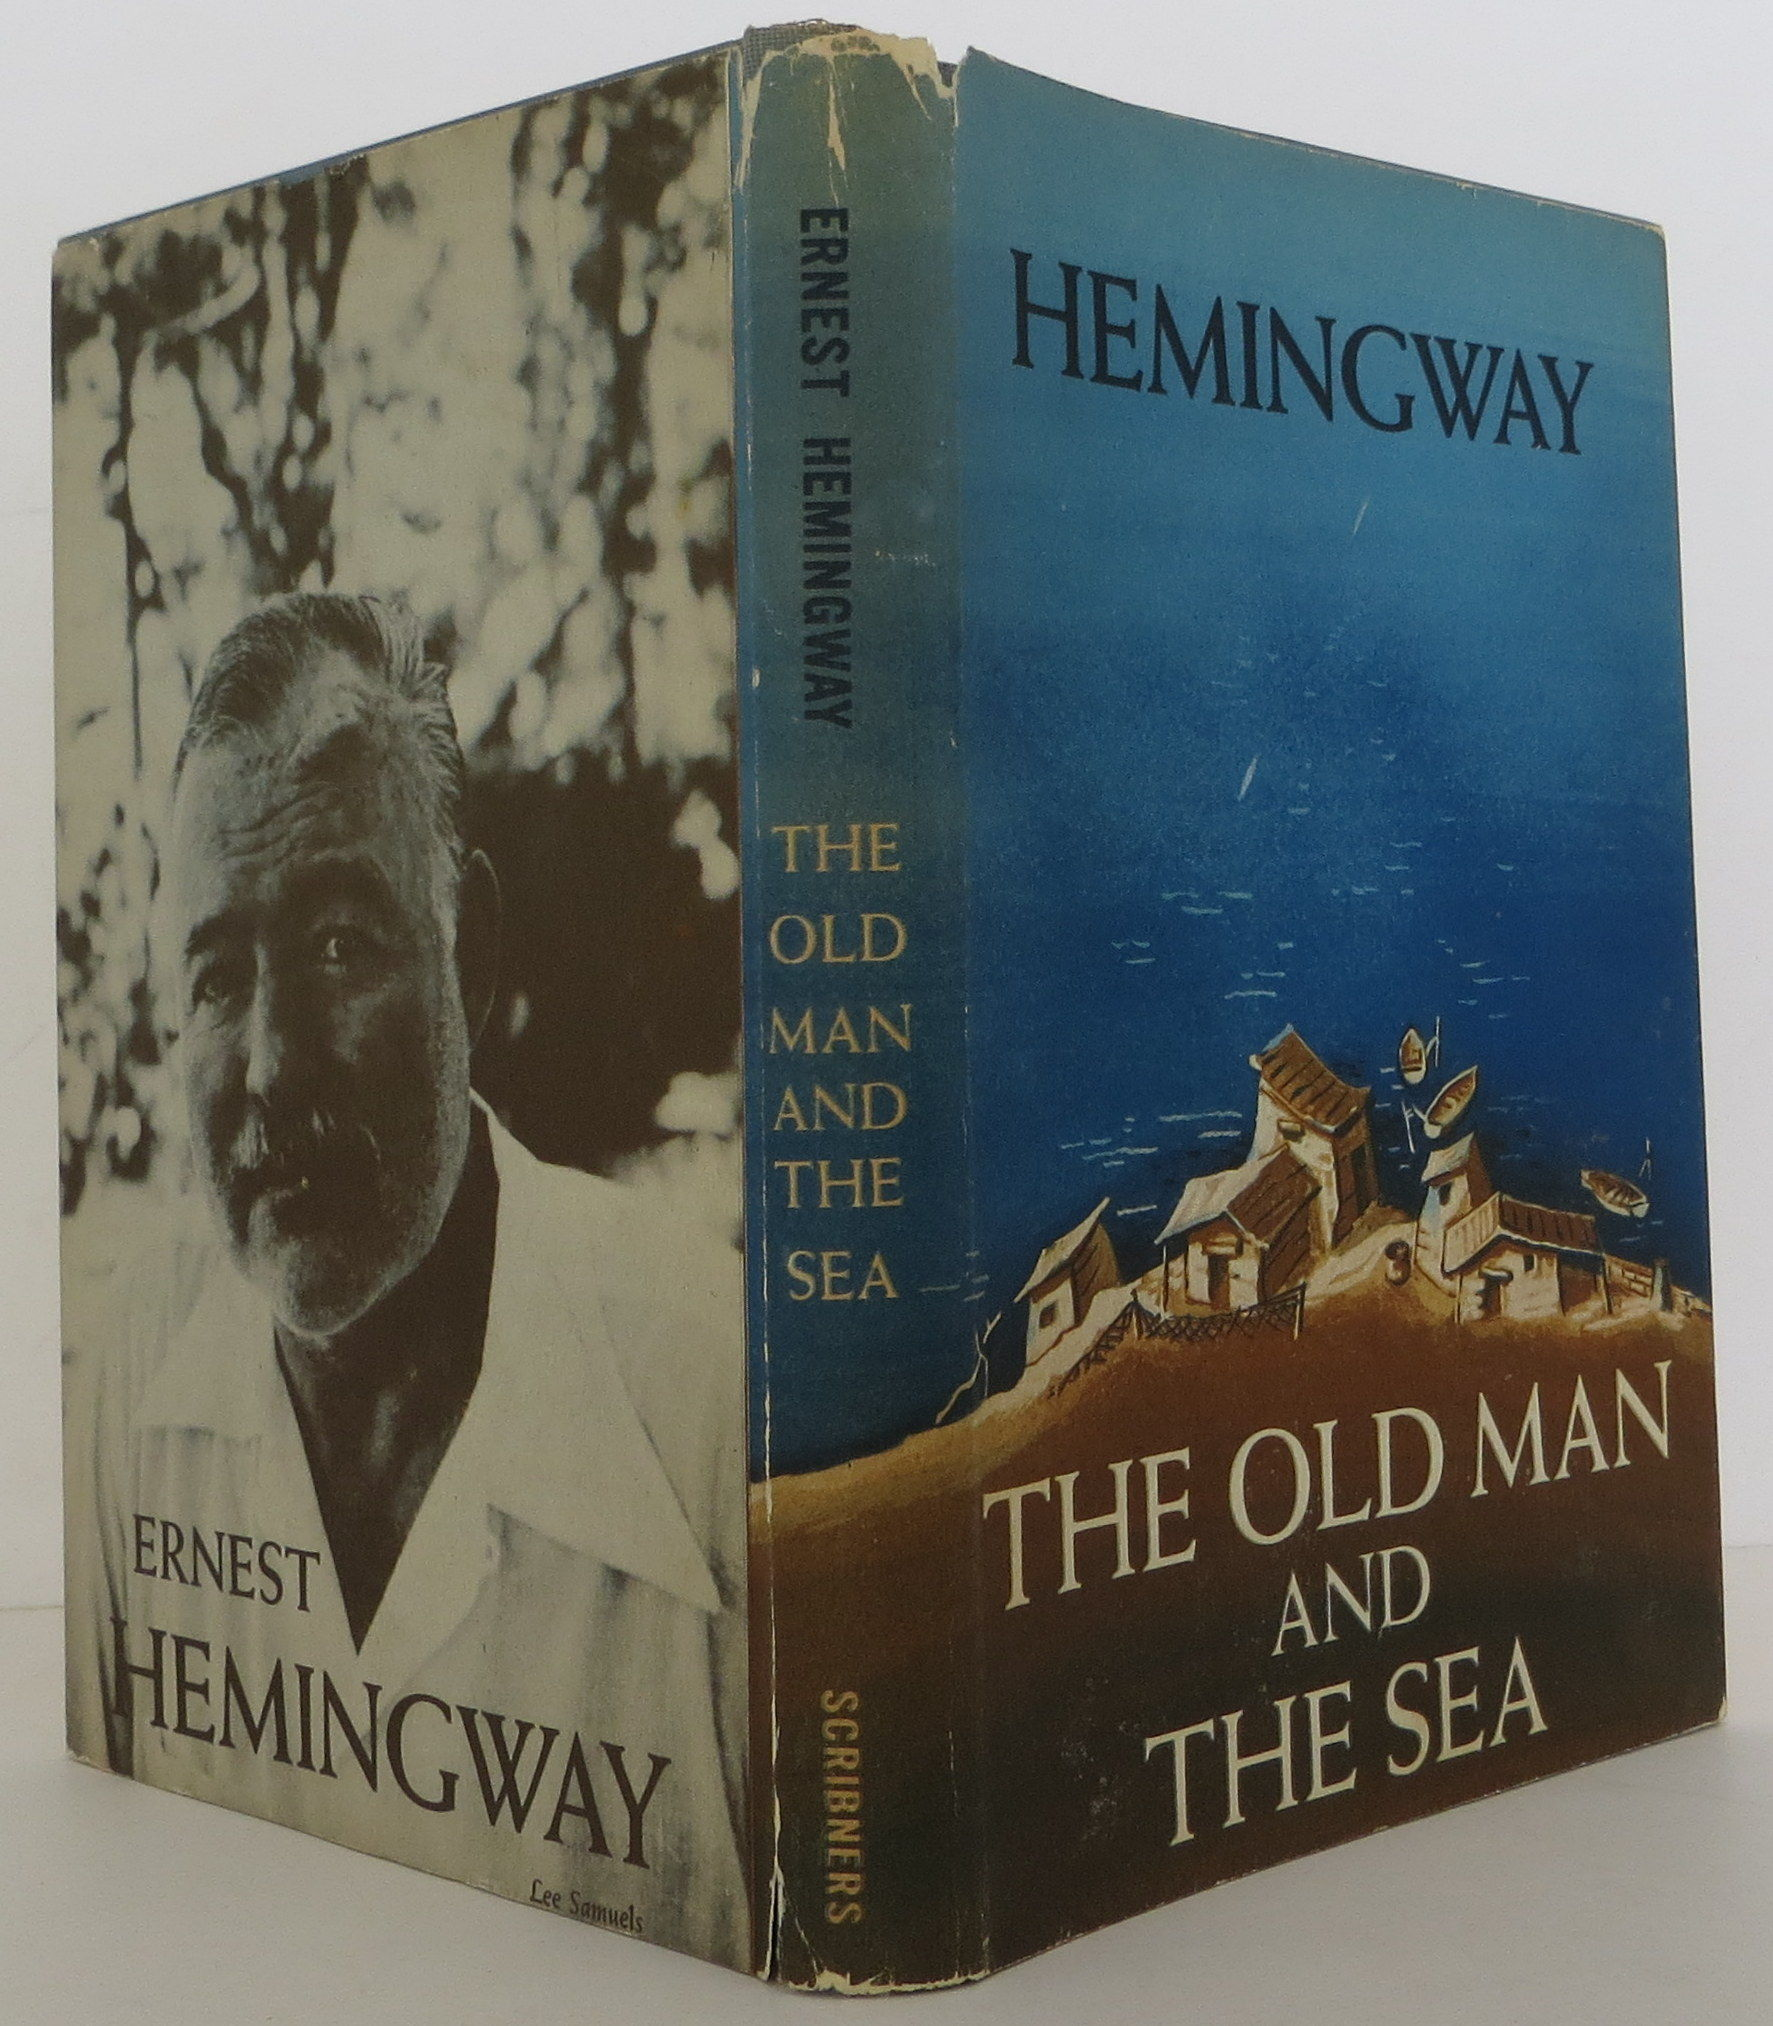 interpreting old man and the sea by ernest hemingway The old man and the sea by ernest hemingway  hence the title the old man and the sea, not the old man and his shack, or the old man and the fishing village .